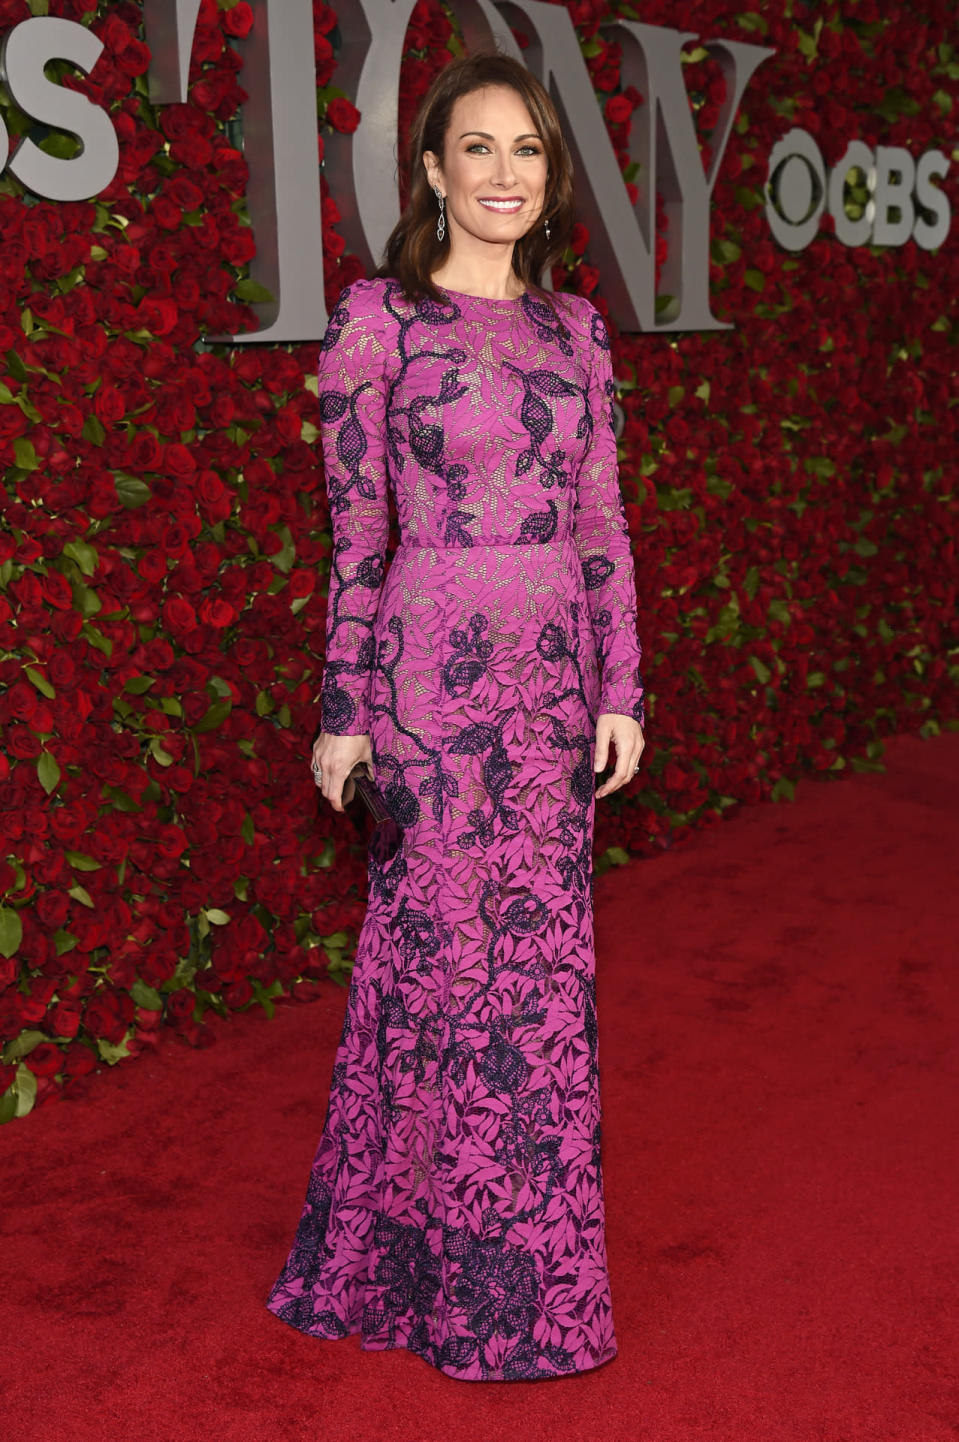 "<p>Laura Benanti, nominated for her role in <i>She Loves Me</i>, looked gorgeous in a hot pink and purple lace dress from Oscar de la Renta. Before performing a number from the musical, she tweeted, ""Tonight, every note I sing will be in remembrance of the lives taken in Orlando.""<i> (Photo: Getty Images)</i></p>"